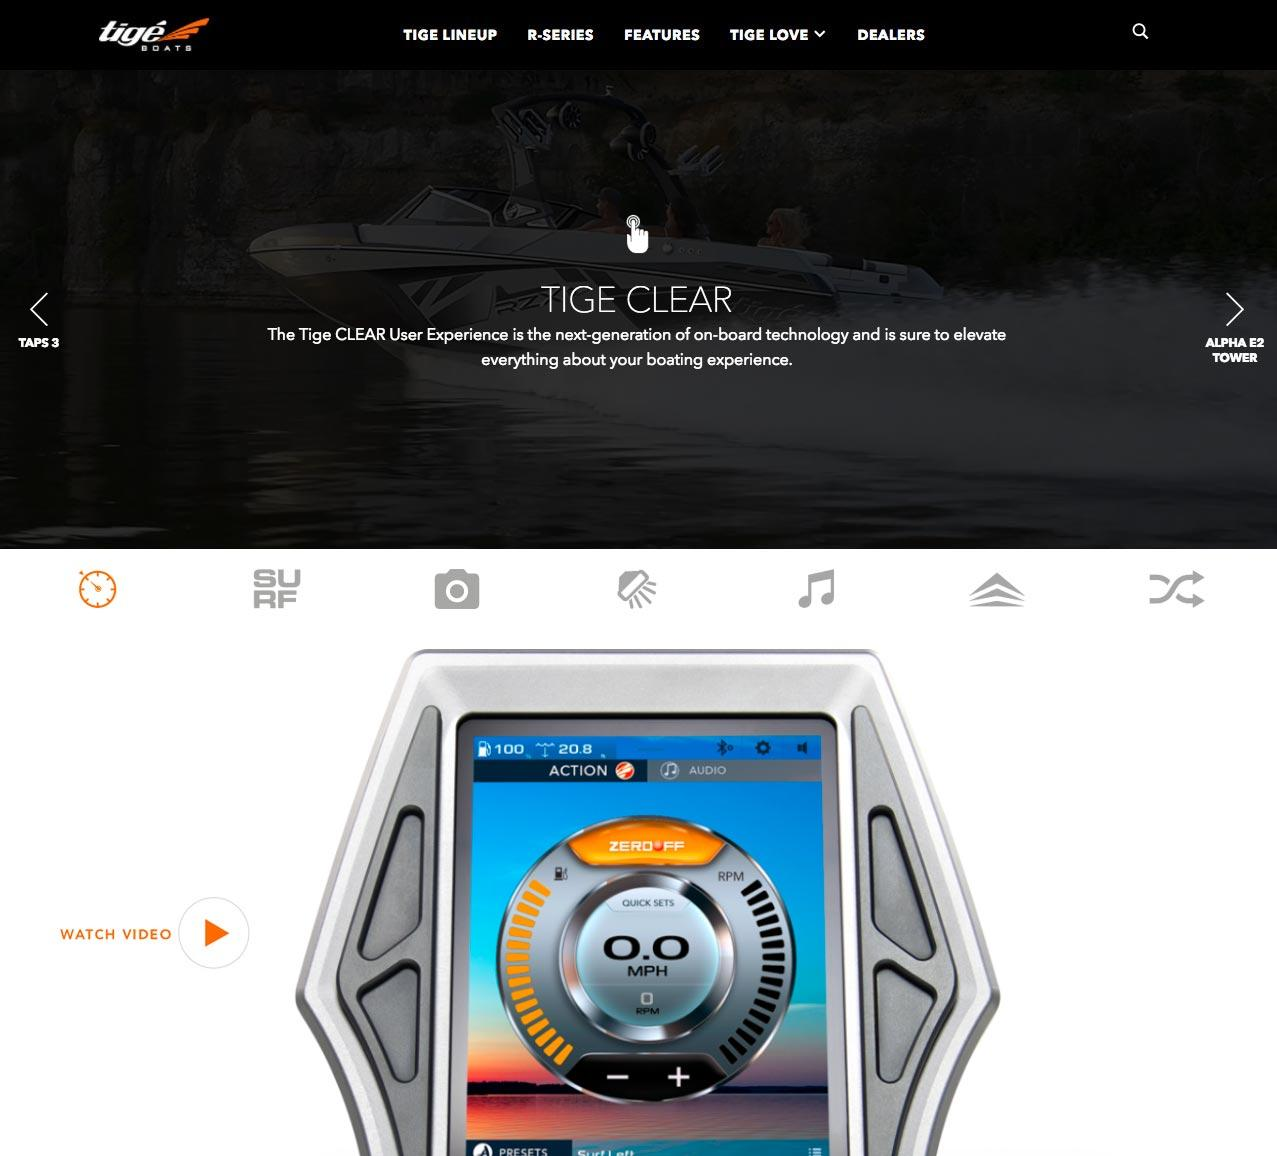 Web Design for Luxury Boats